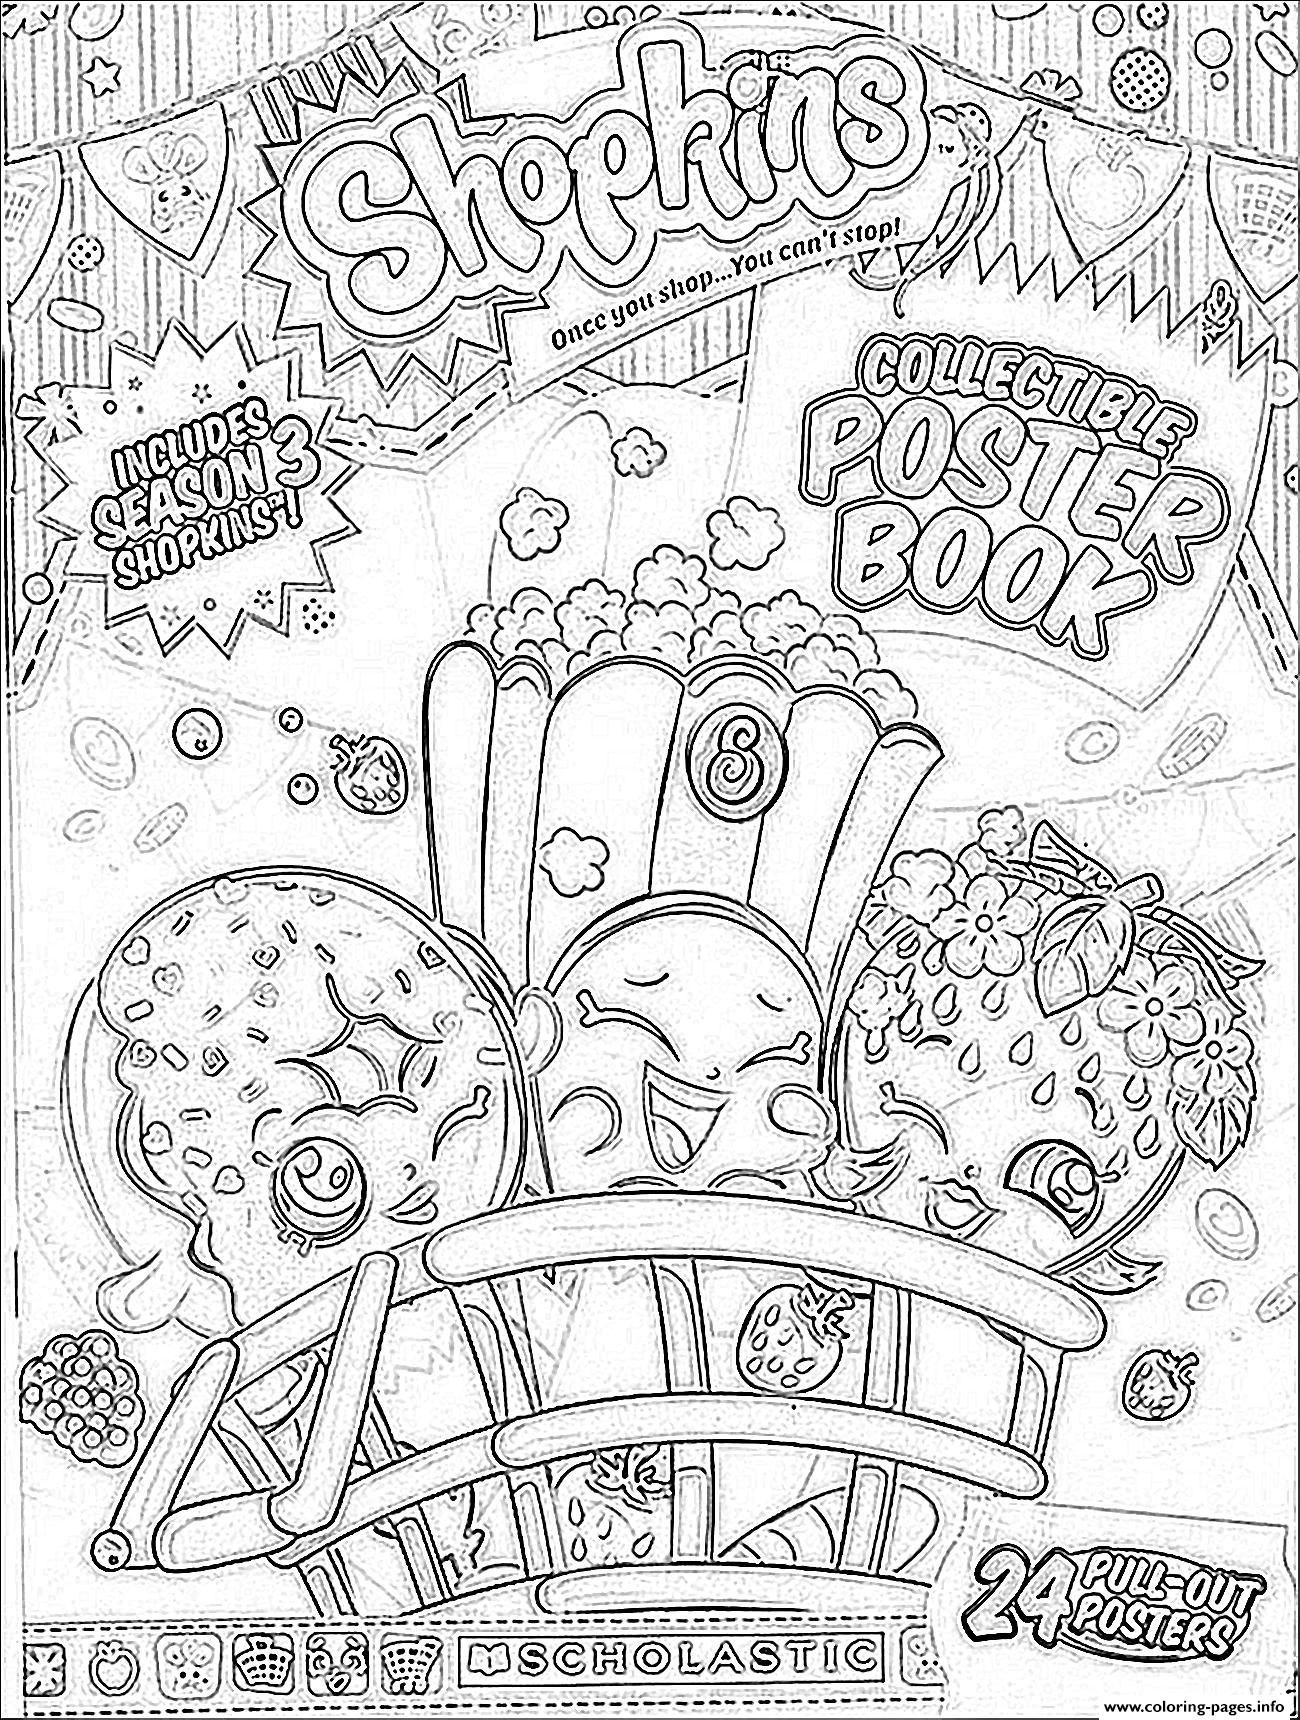 Print Shopkins Season 3 Book Coloring Pages